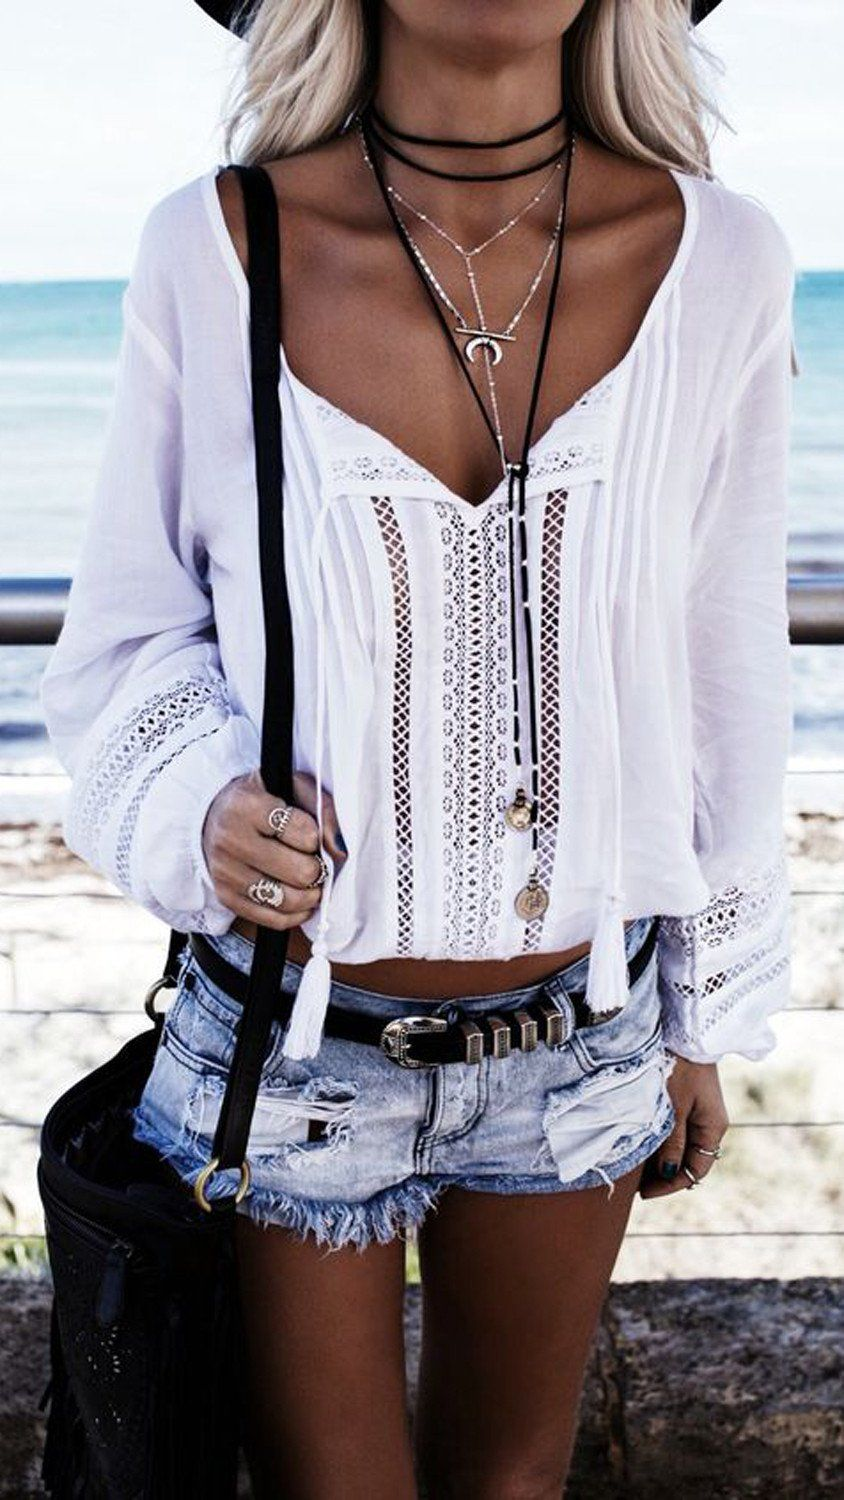 b19bb79c6227 Boho Chic Outfits 2017 - Spring Indie Fashion - Bohemian Style - How to Wear  a Black Choker Necklace Tie at MyBodiArt.com